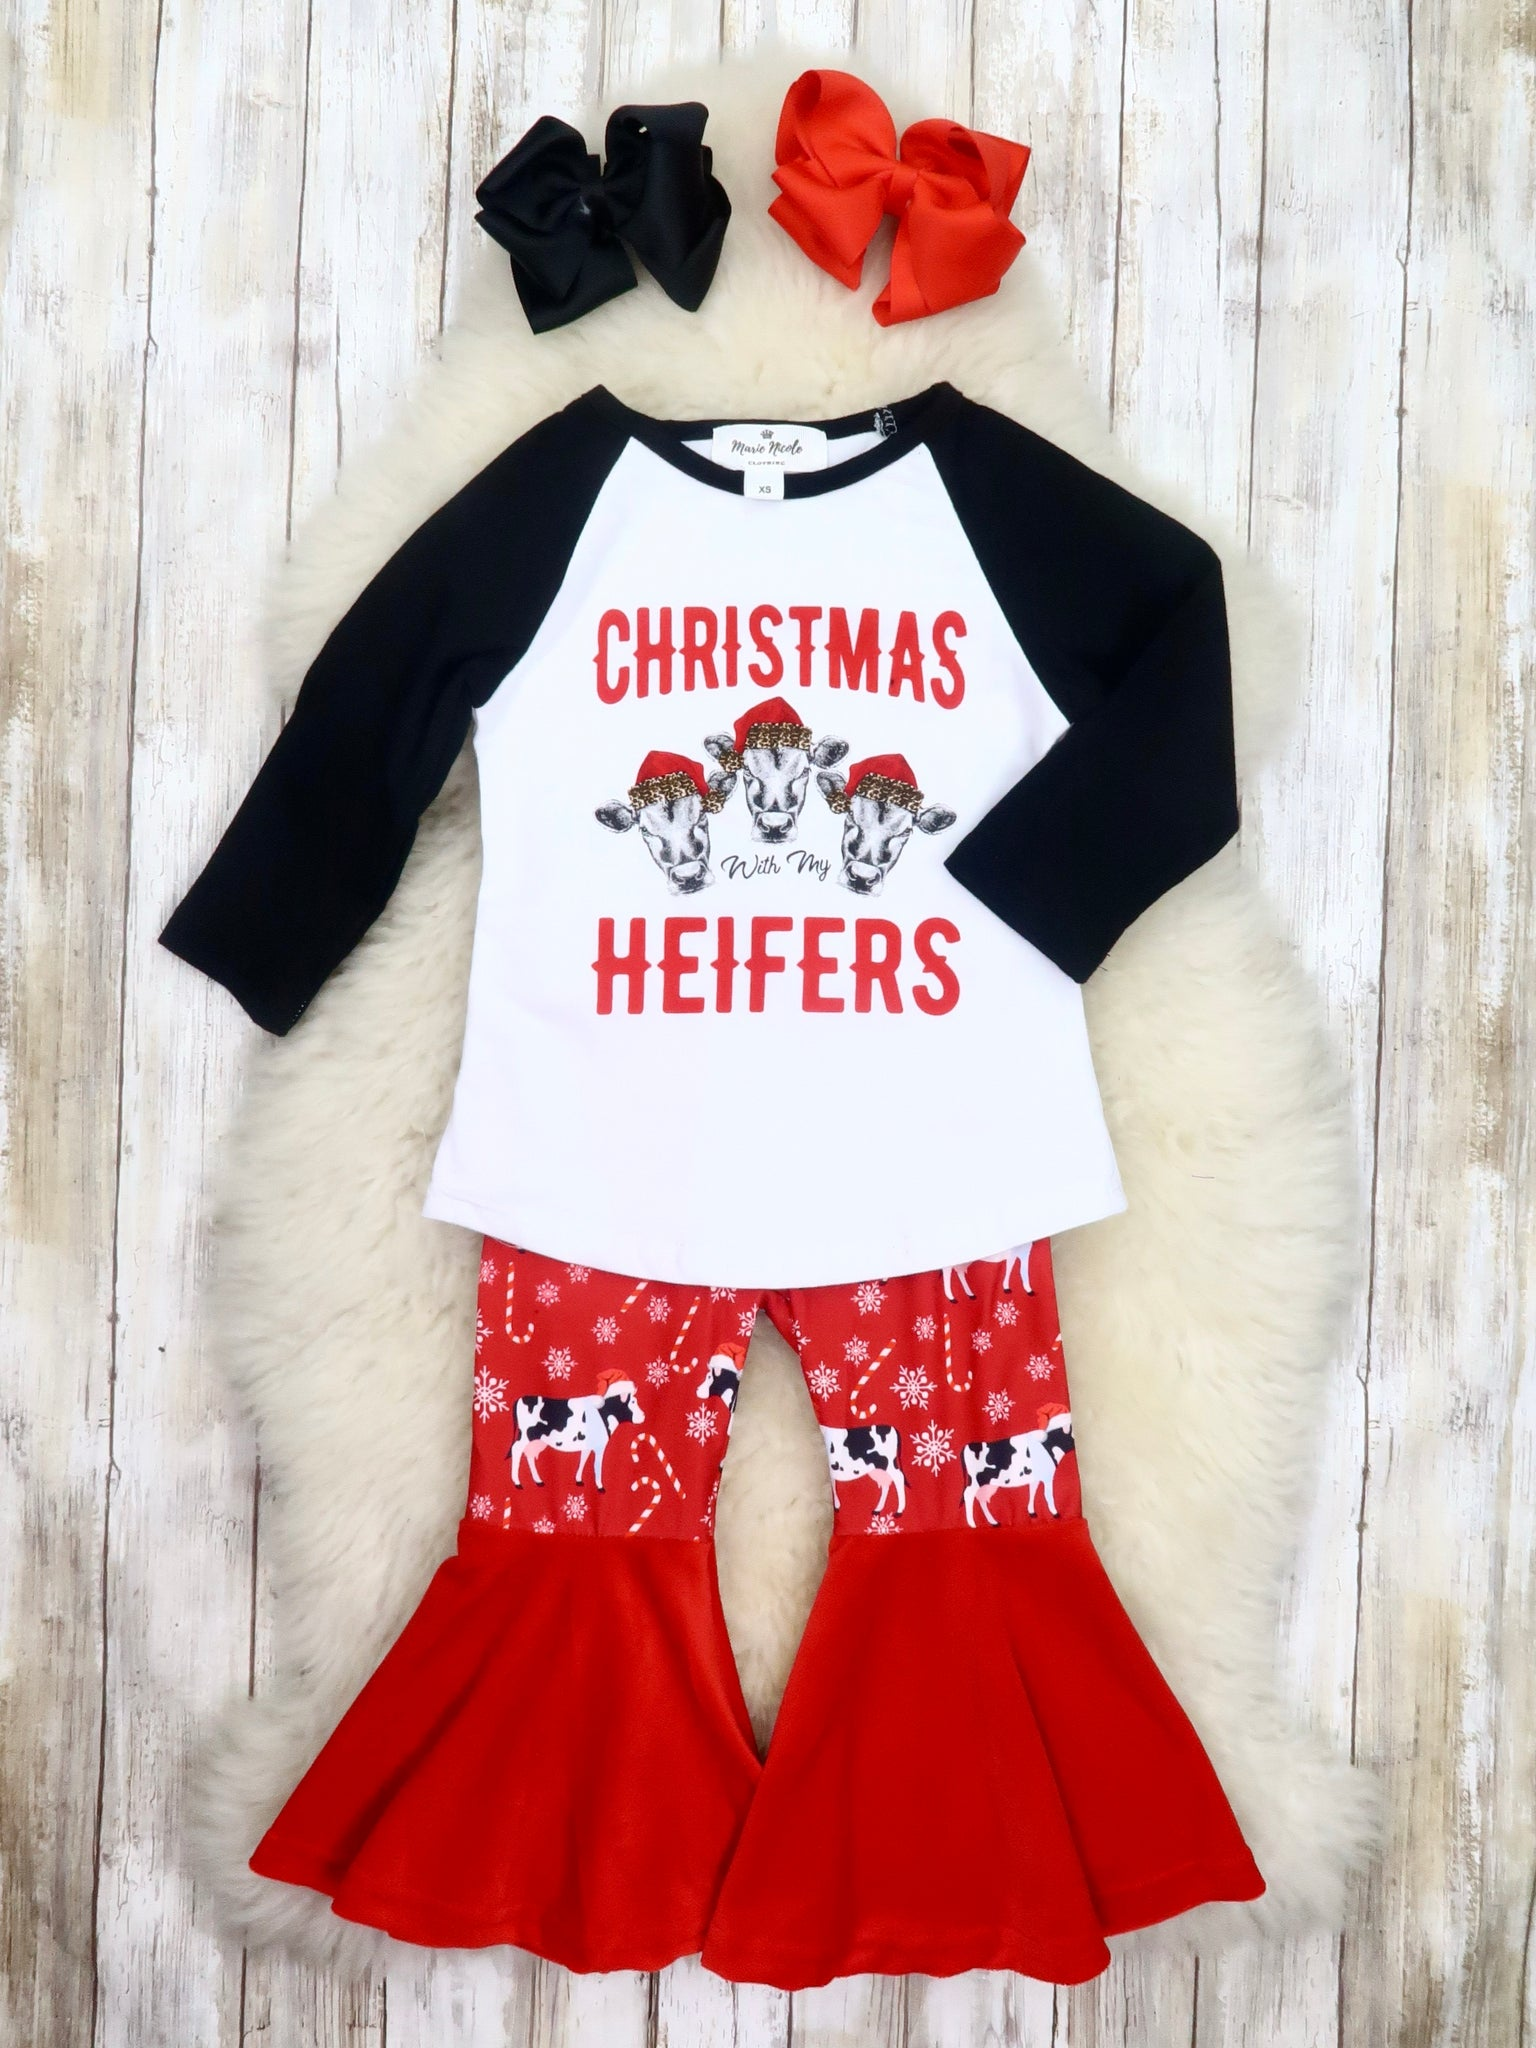 """Christmas With My Heifers"" Top & Cow Bell Bottoms Outfit"